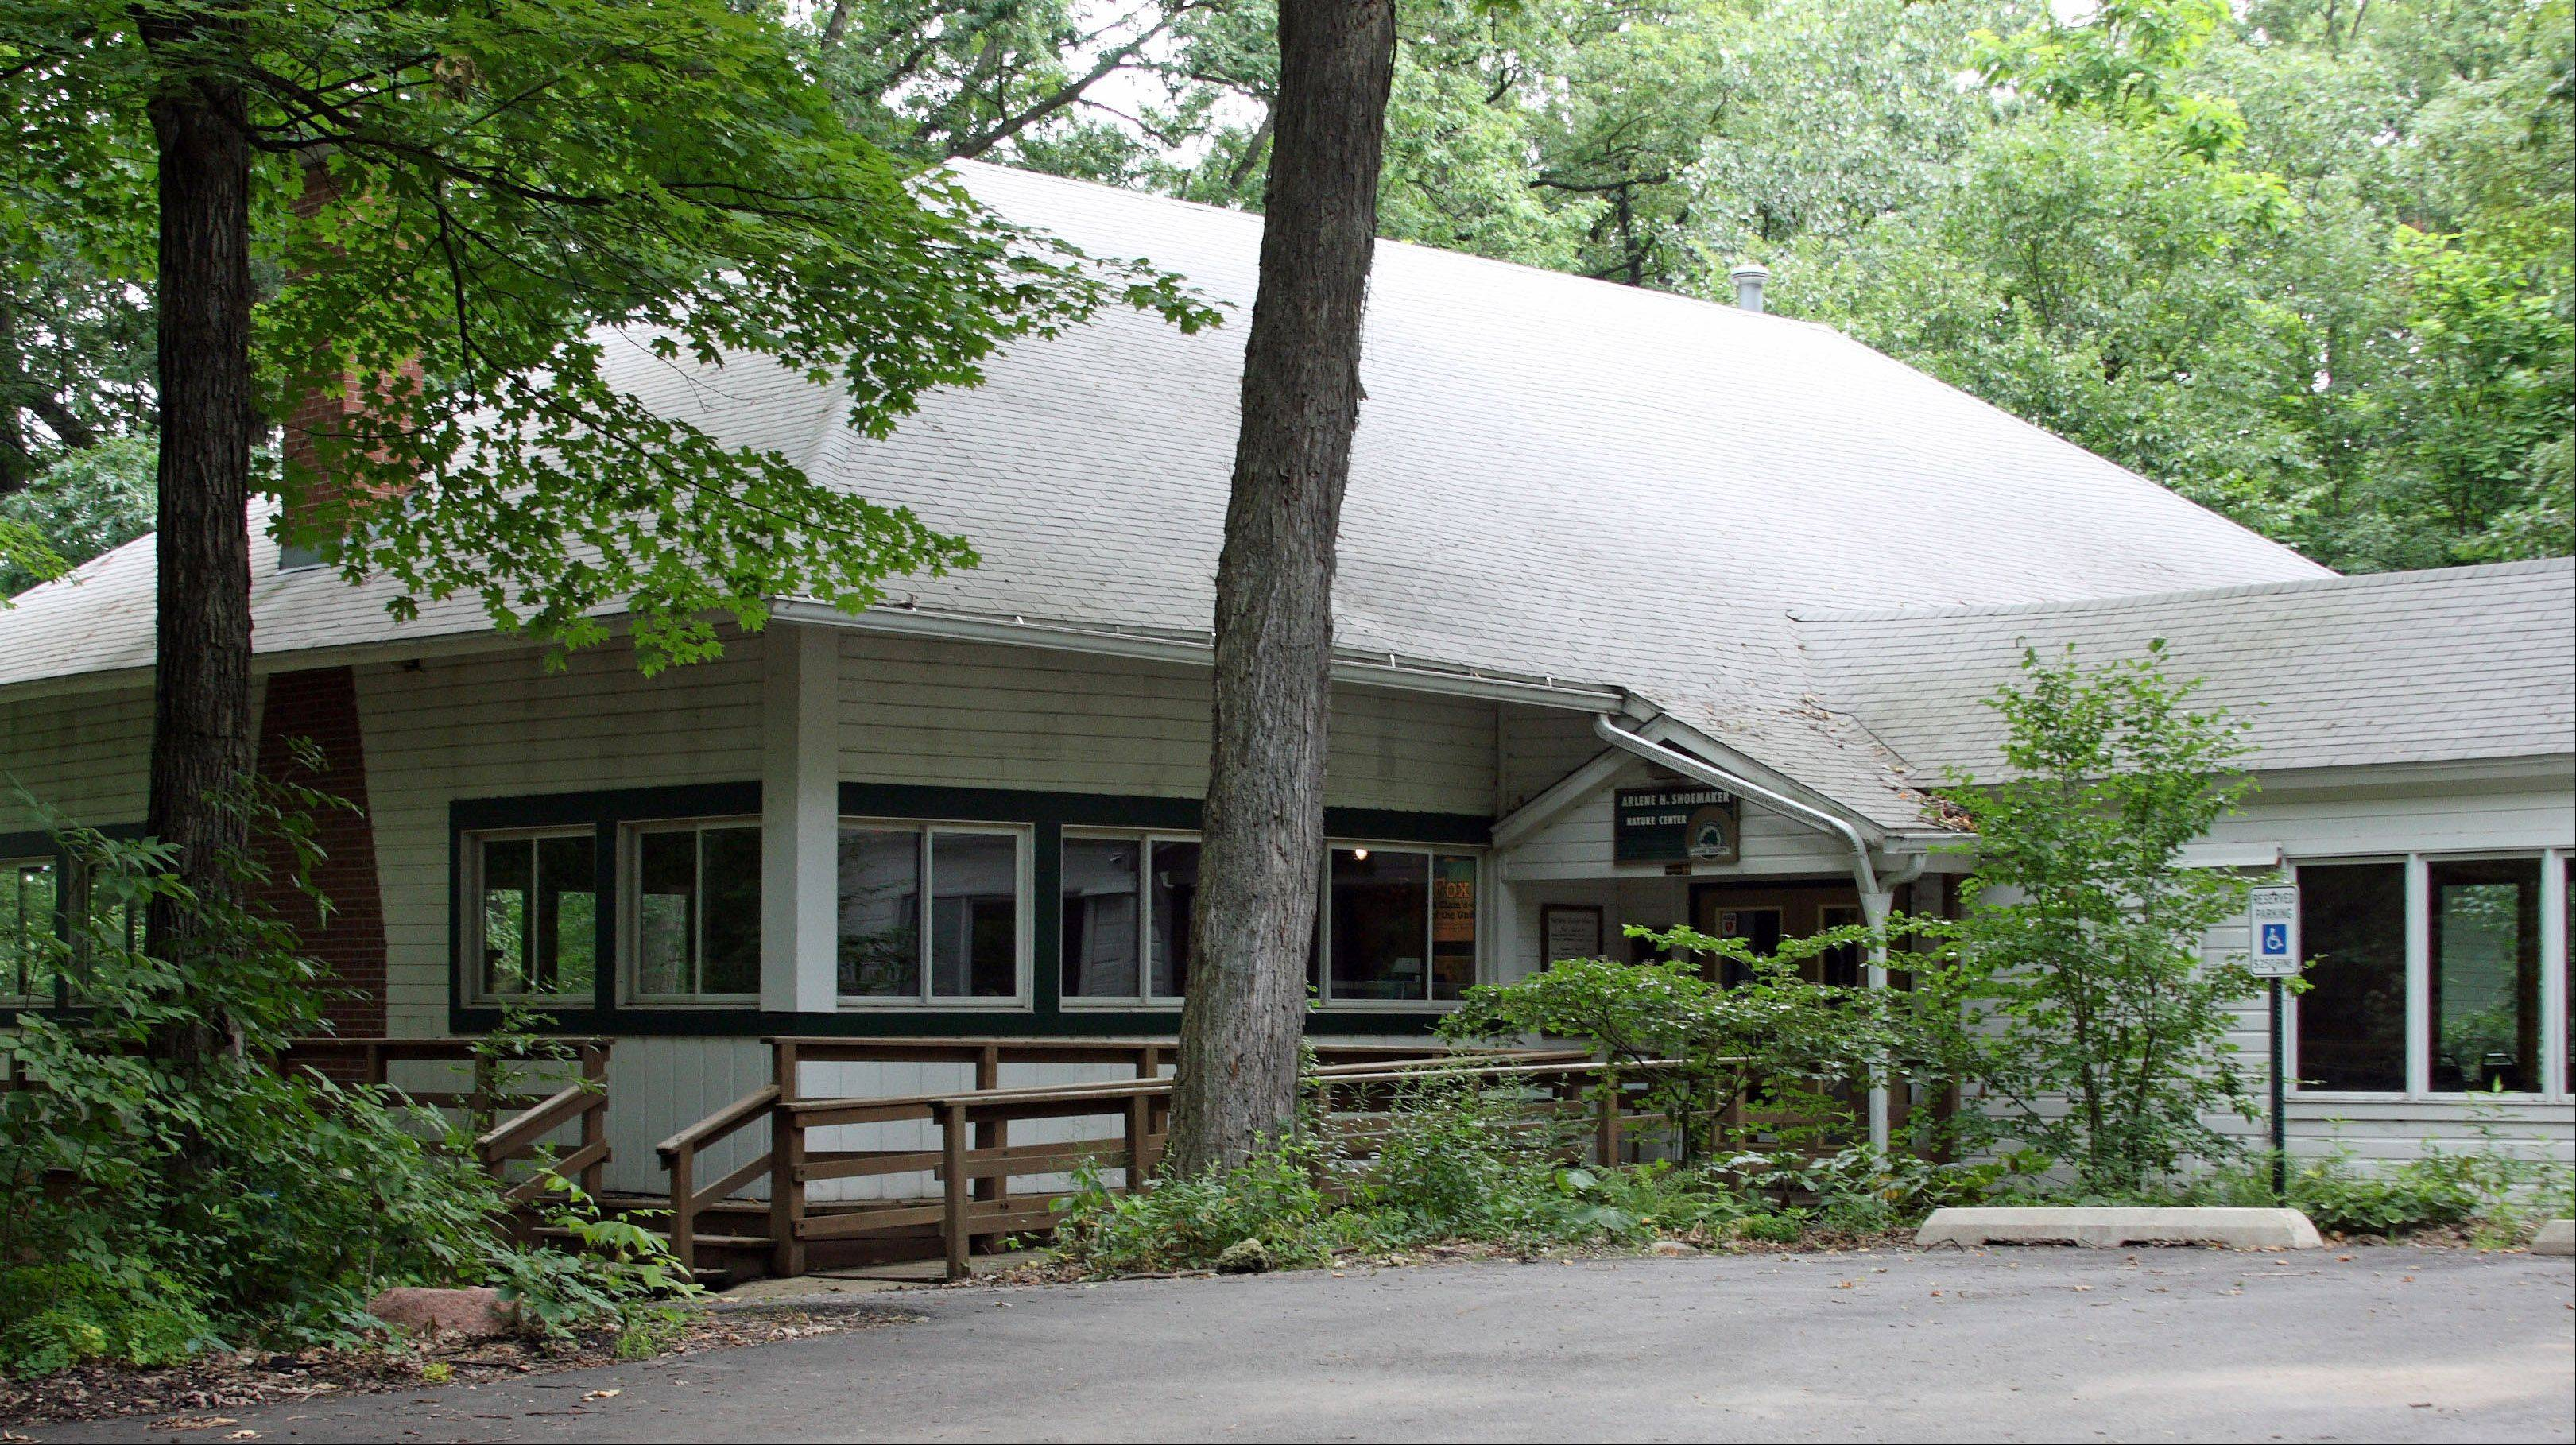 The Nature Center at Tekakwitha Woods in St. Charles.